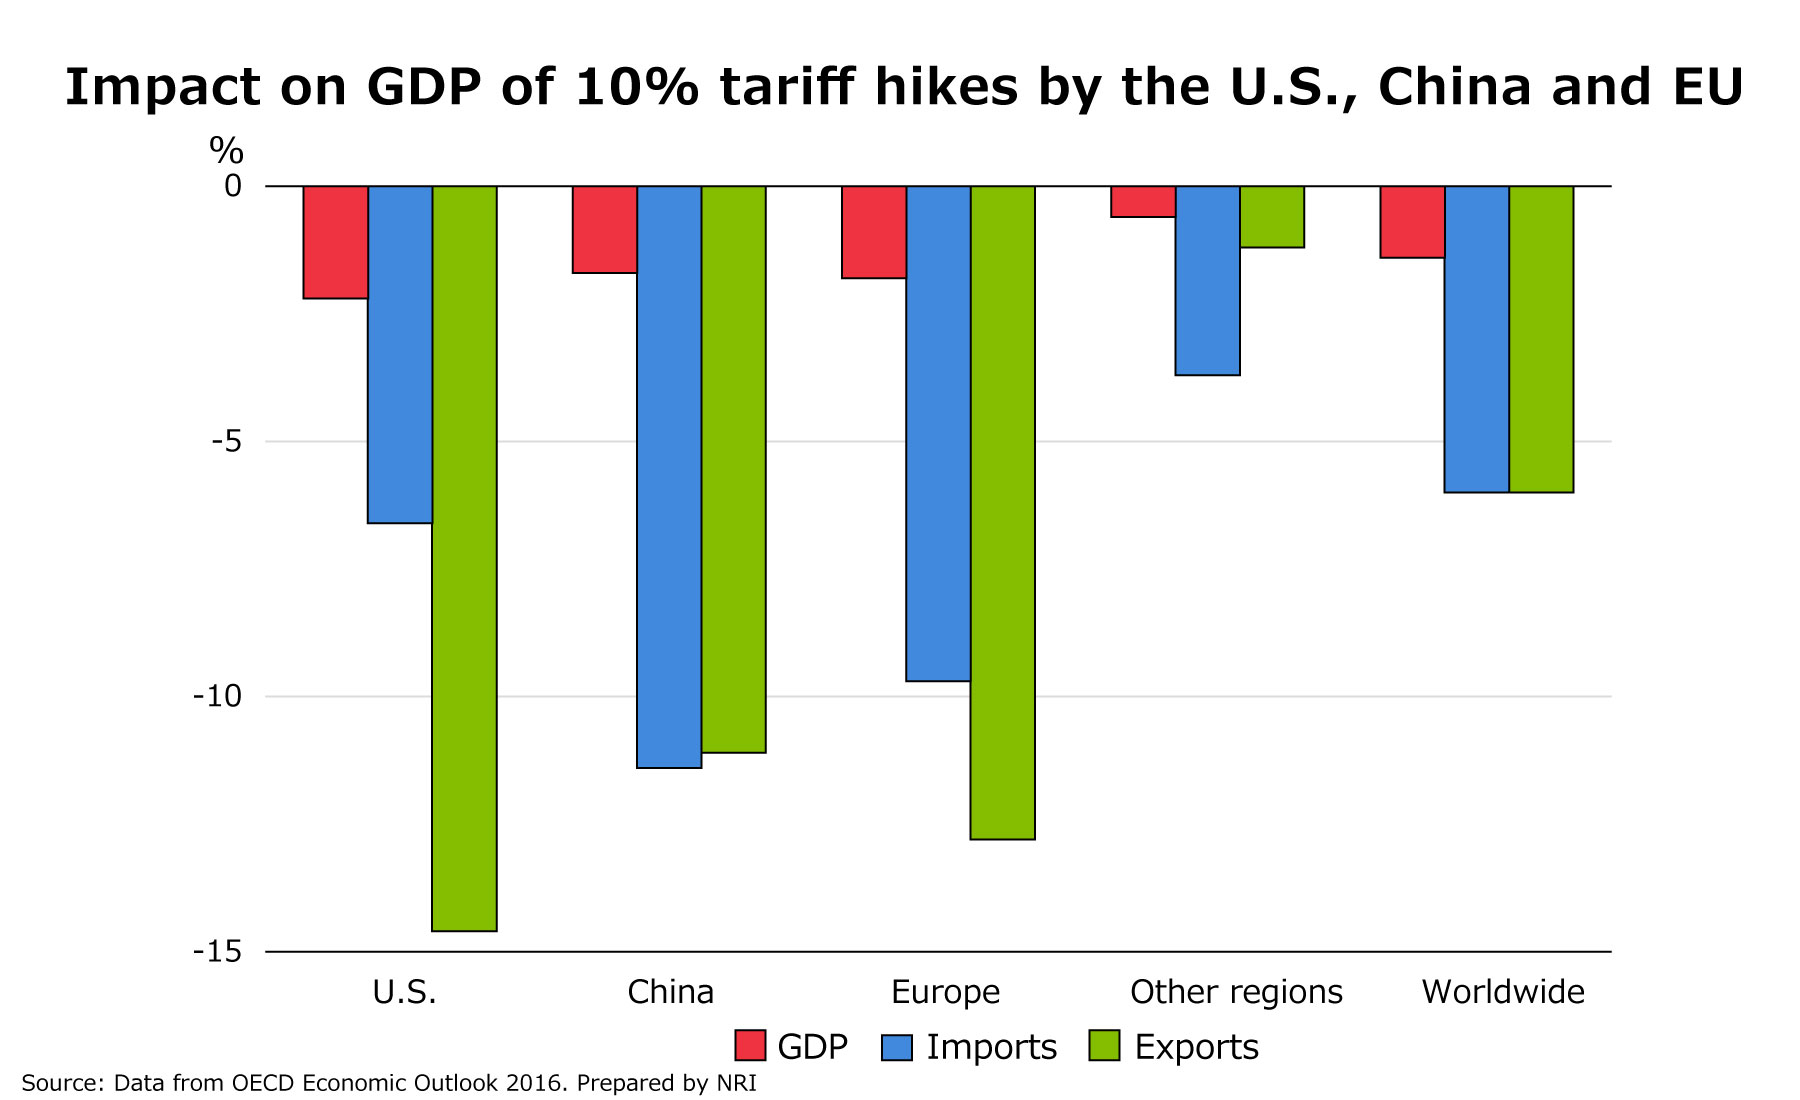 (Graph) Impact on GDP of 10% tariff hikes by the U.S., China and EU